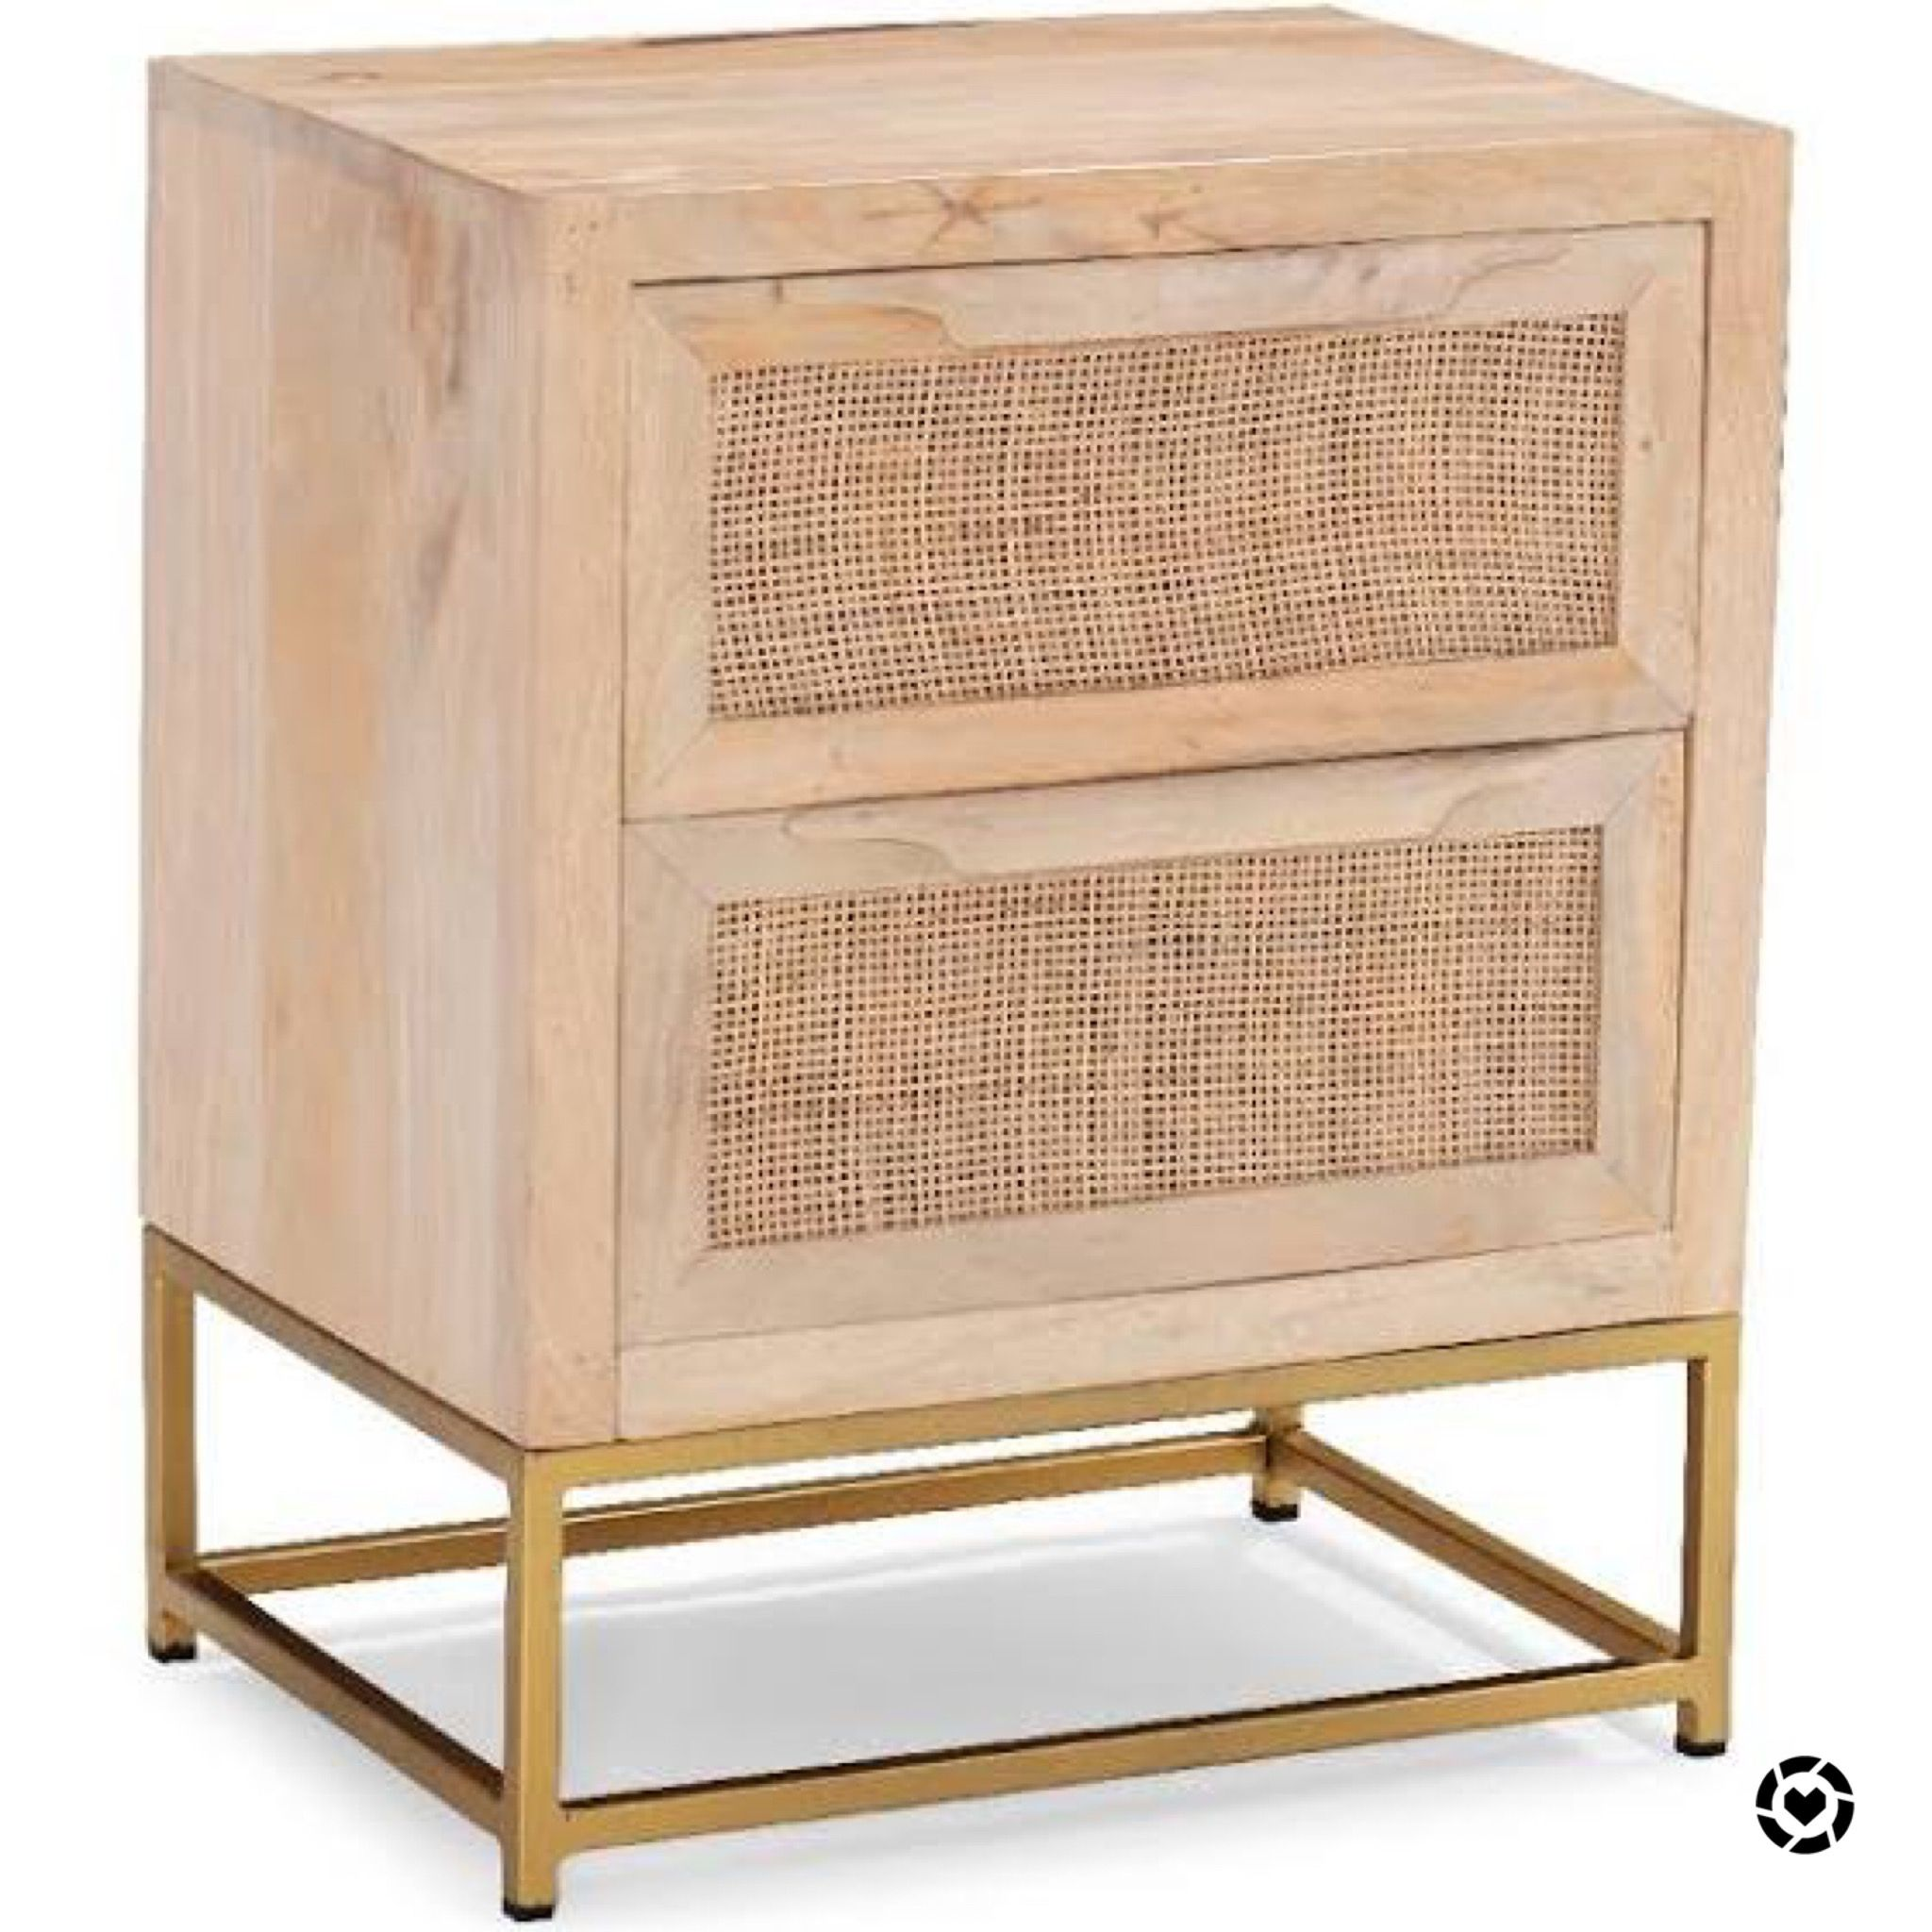 Raw Wood Cane 2 Drawer Nightstand With Metal Base In 2020 Rustic Dinning Room Decor Accent Chests And Cabinets Dining Room Cozy